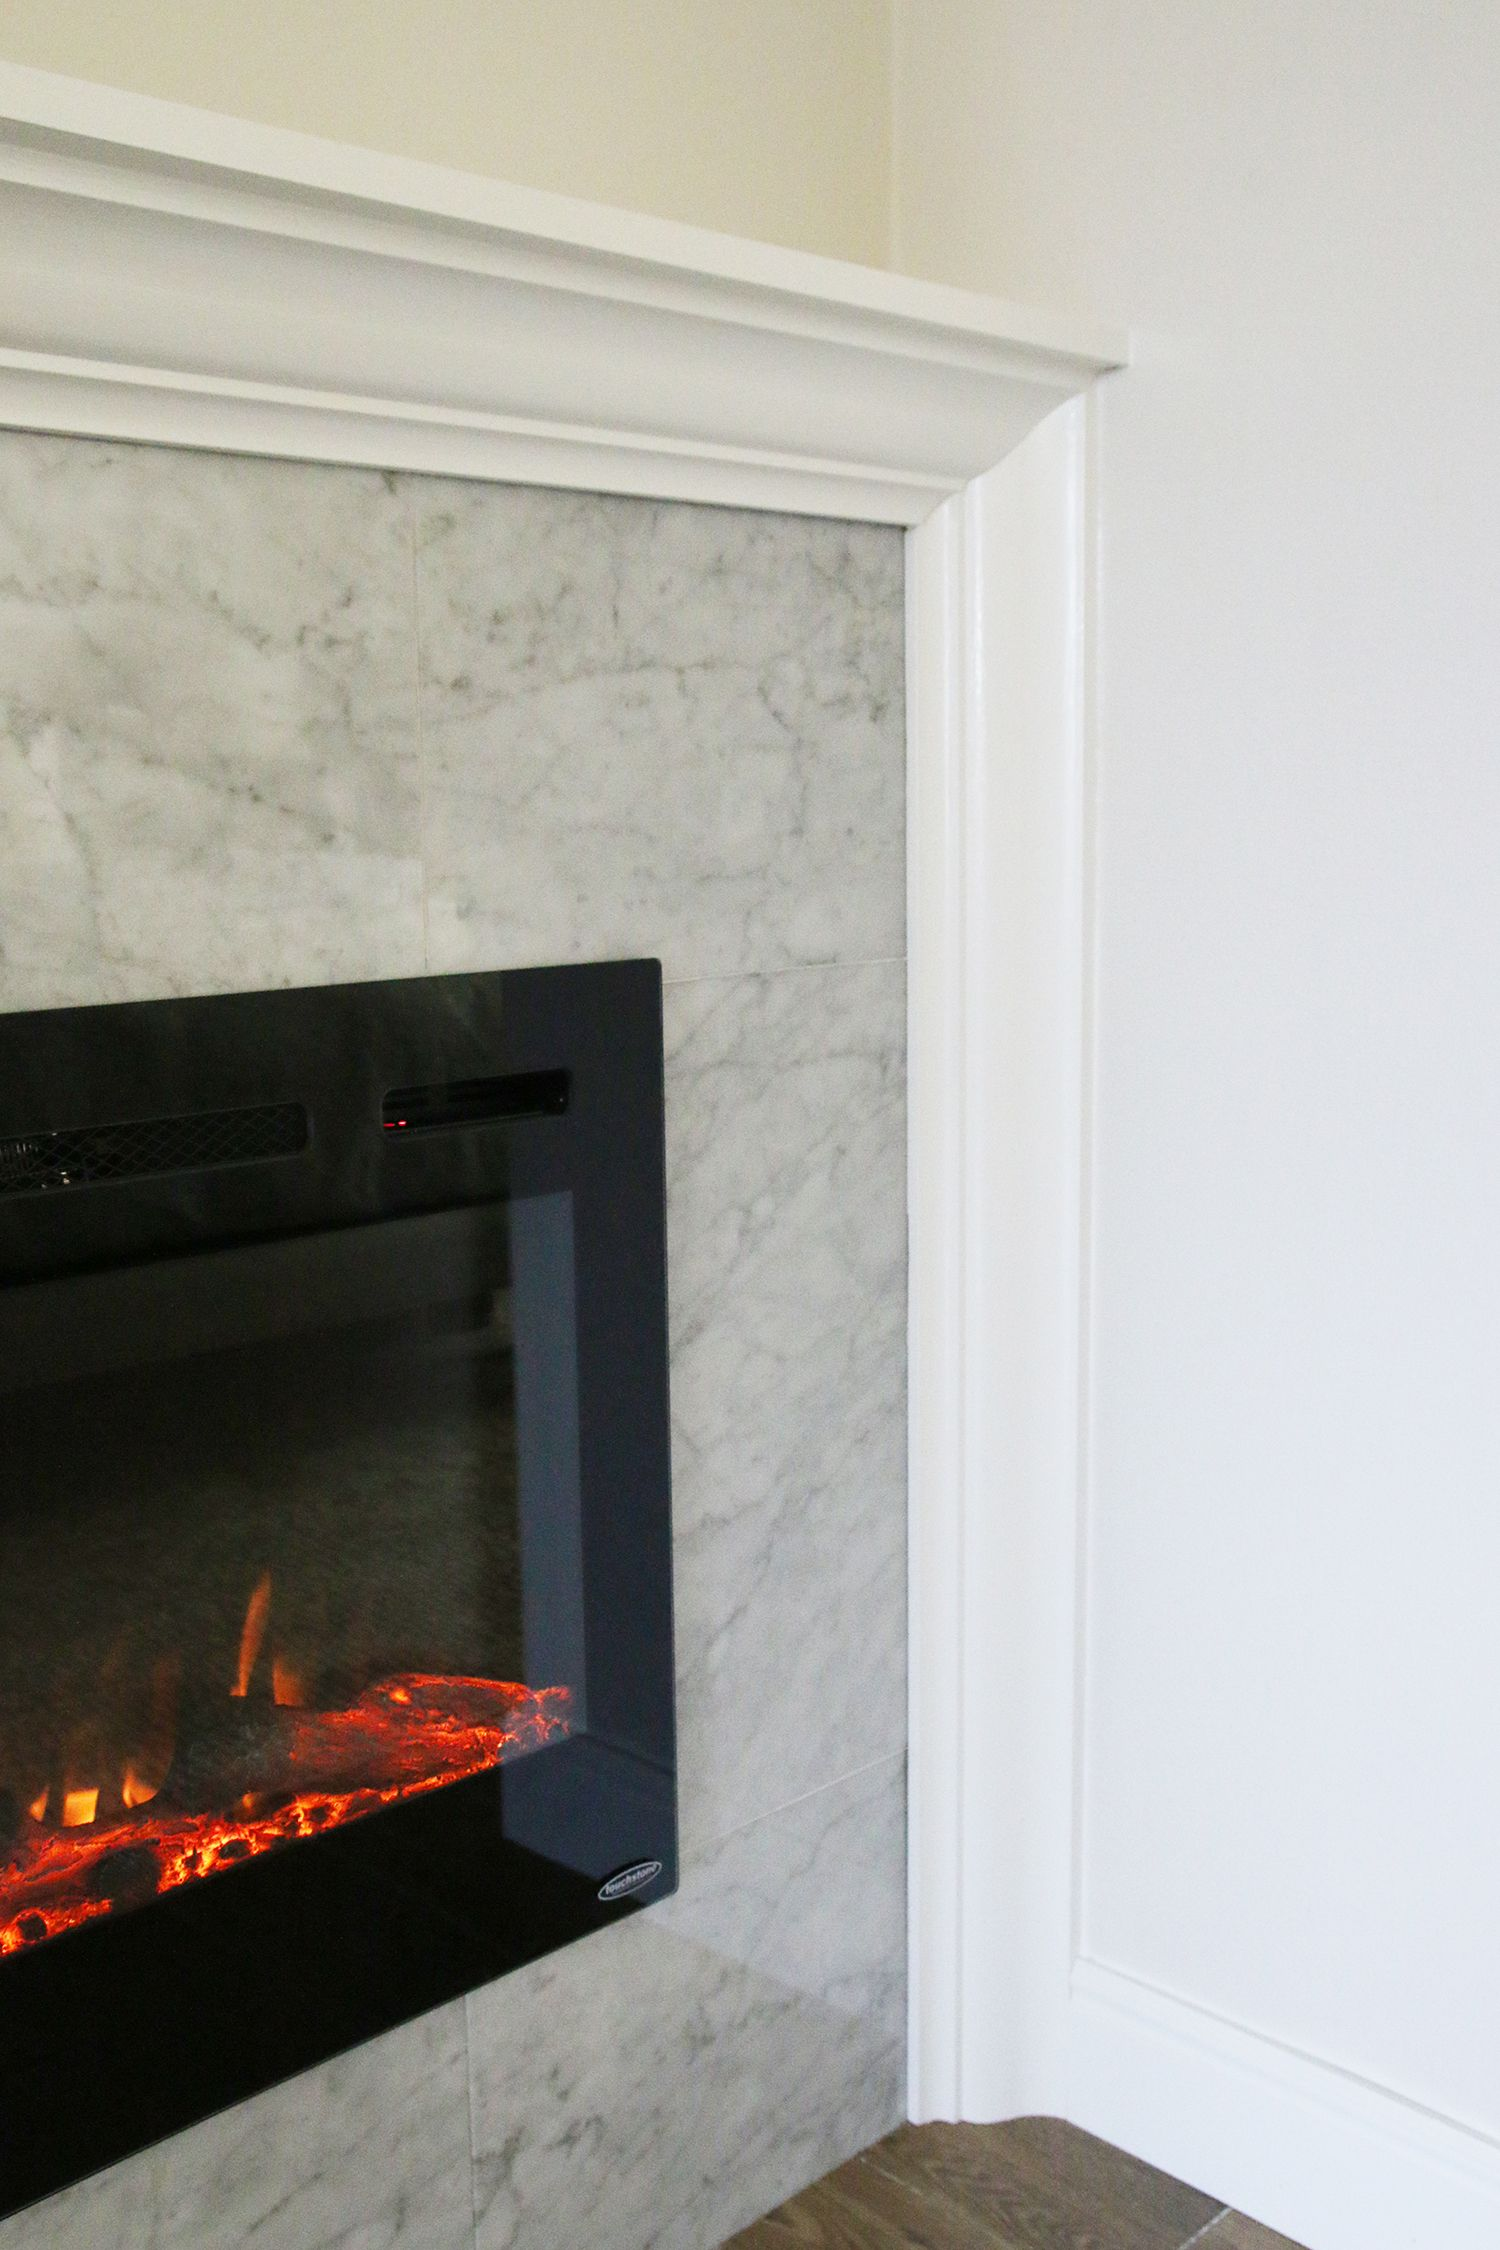 Wood Fireplace Inserts Lowes Inspirational How to Diy A Built In Electric Fireplace